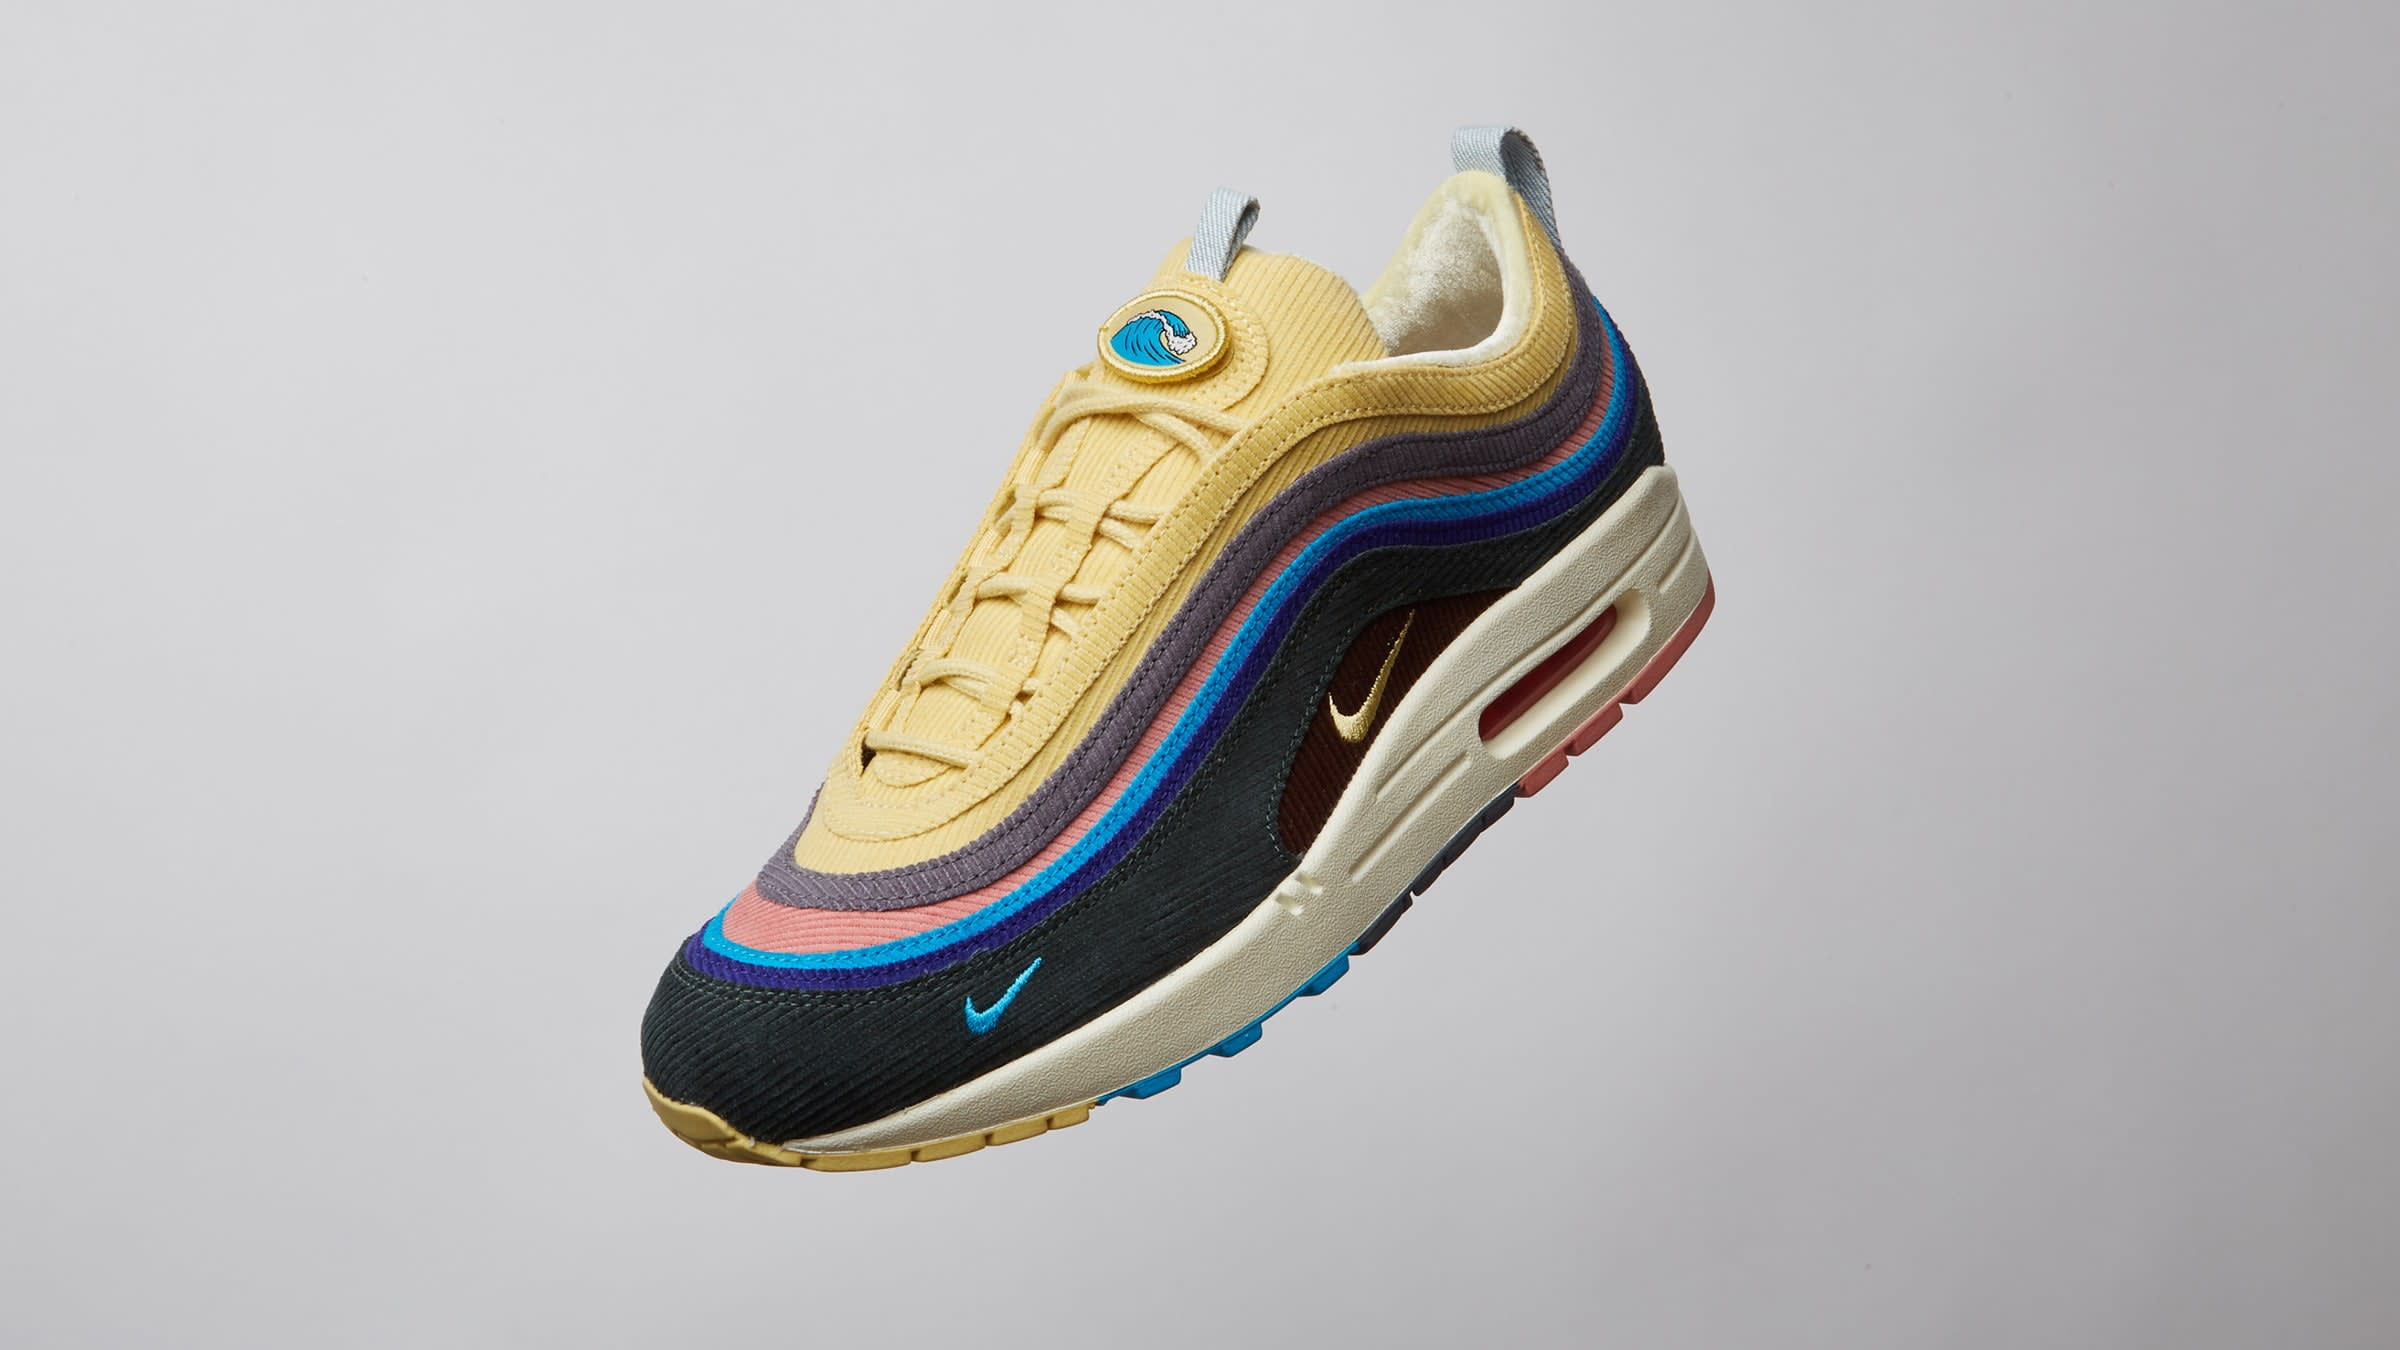 top brands sale online 50% off wotherspoon x nike air